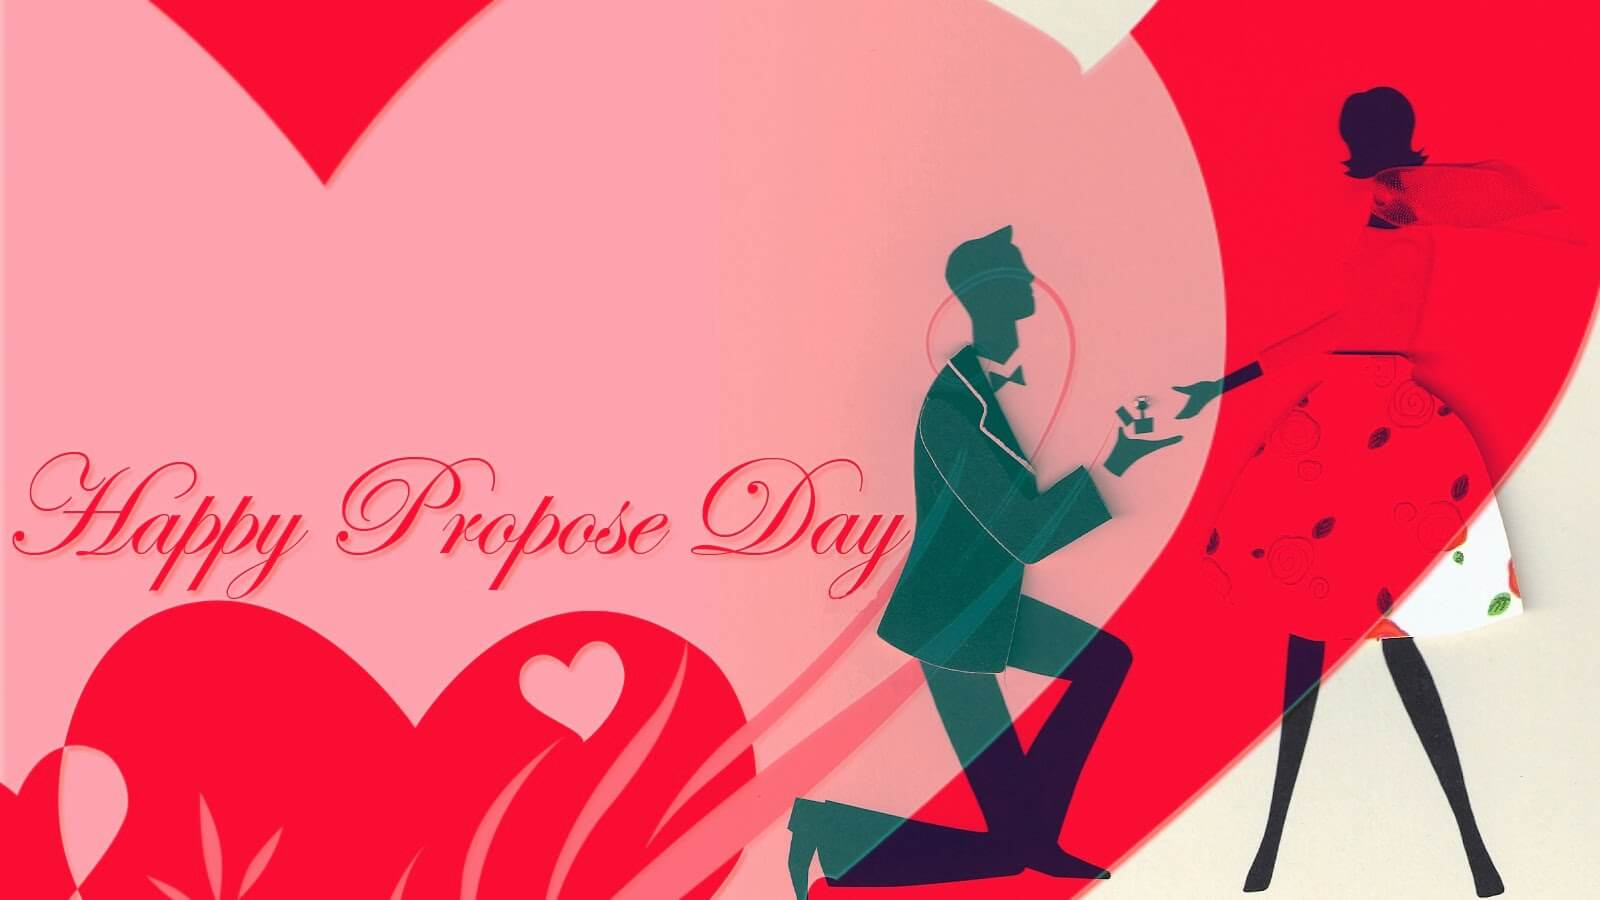 Propose Day Wallpapers Free Download